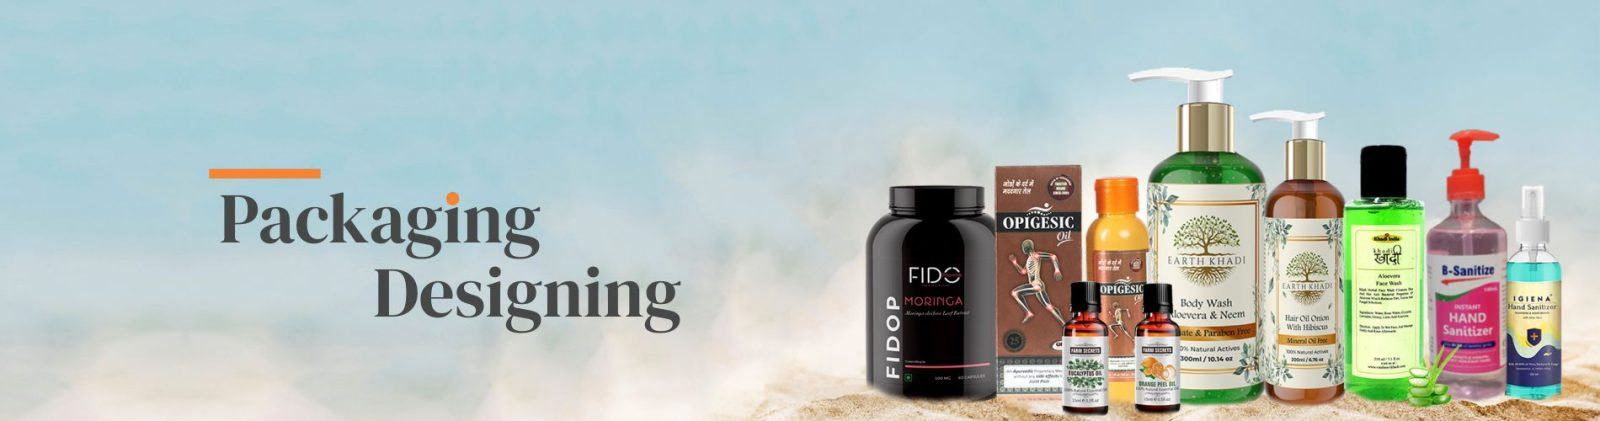 Packaging Design Company in Chandigarh